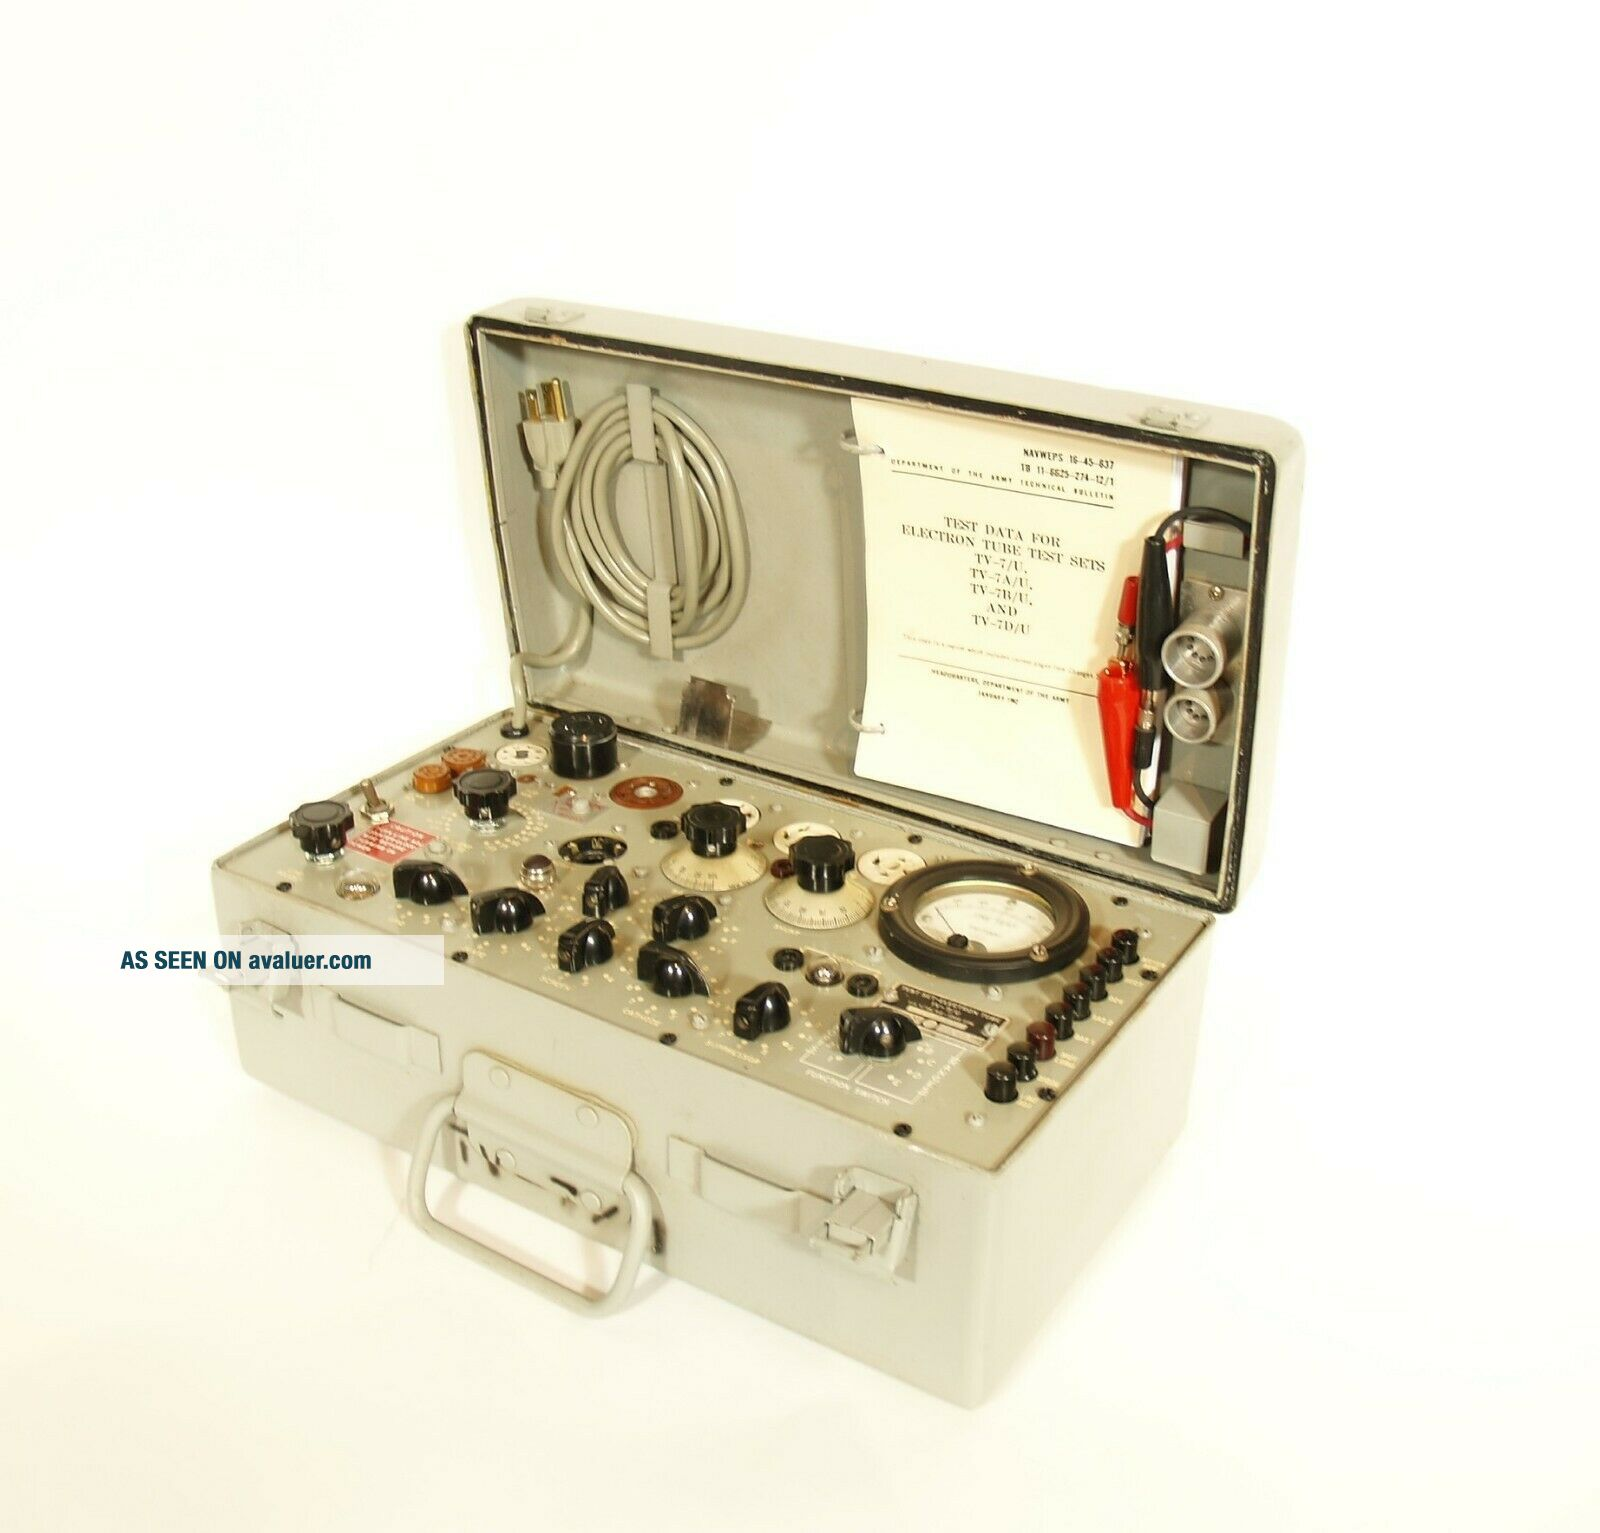 Outstanding TV - 7 Military Tube Tester Serviced & Calibrated by Dan Nelson 2/2019